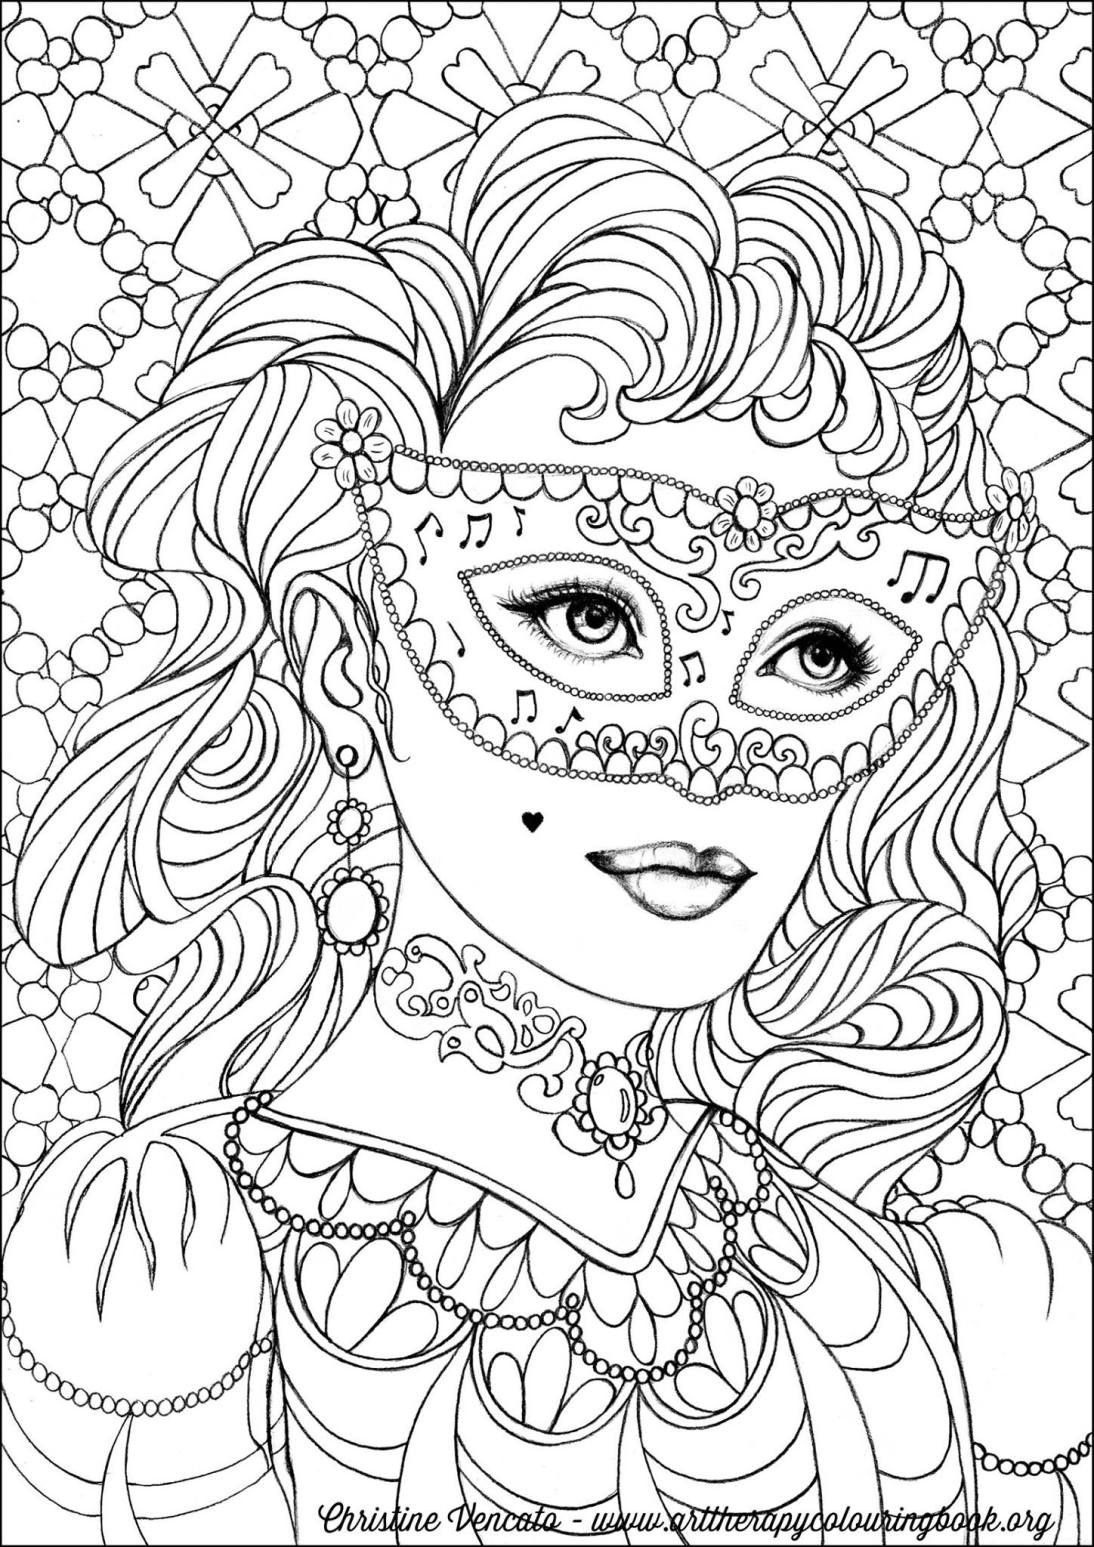 Free Coloring Page From Adult Coloring